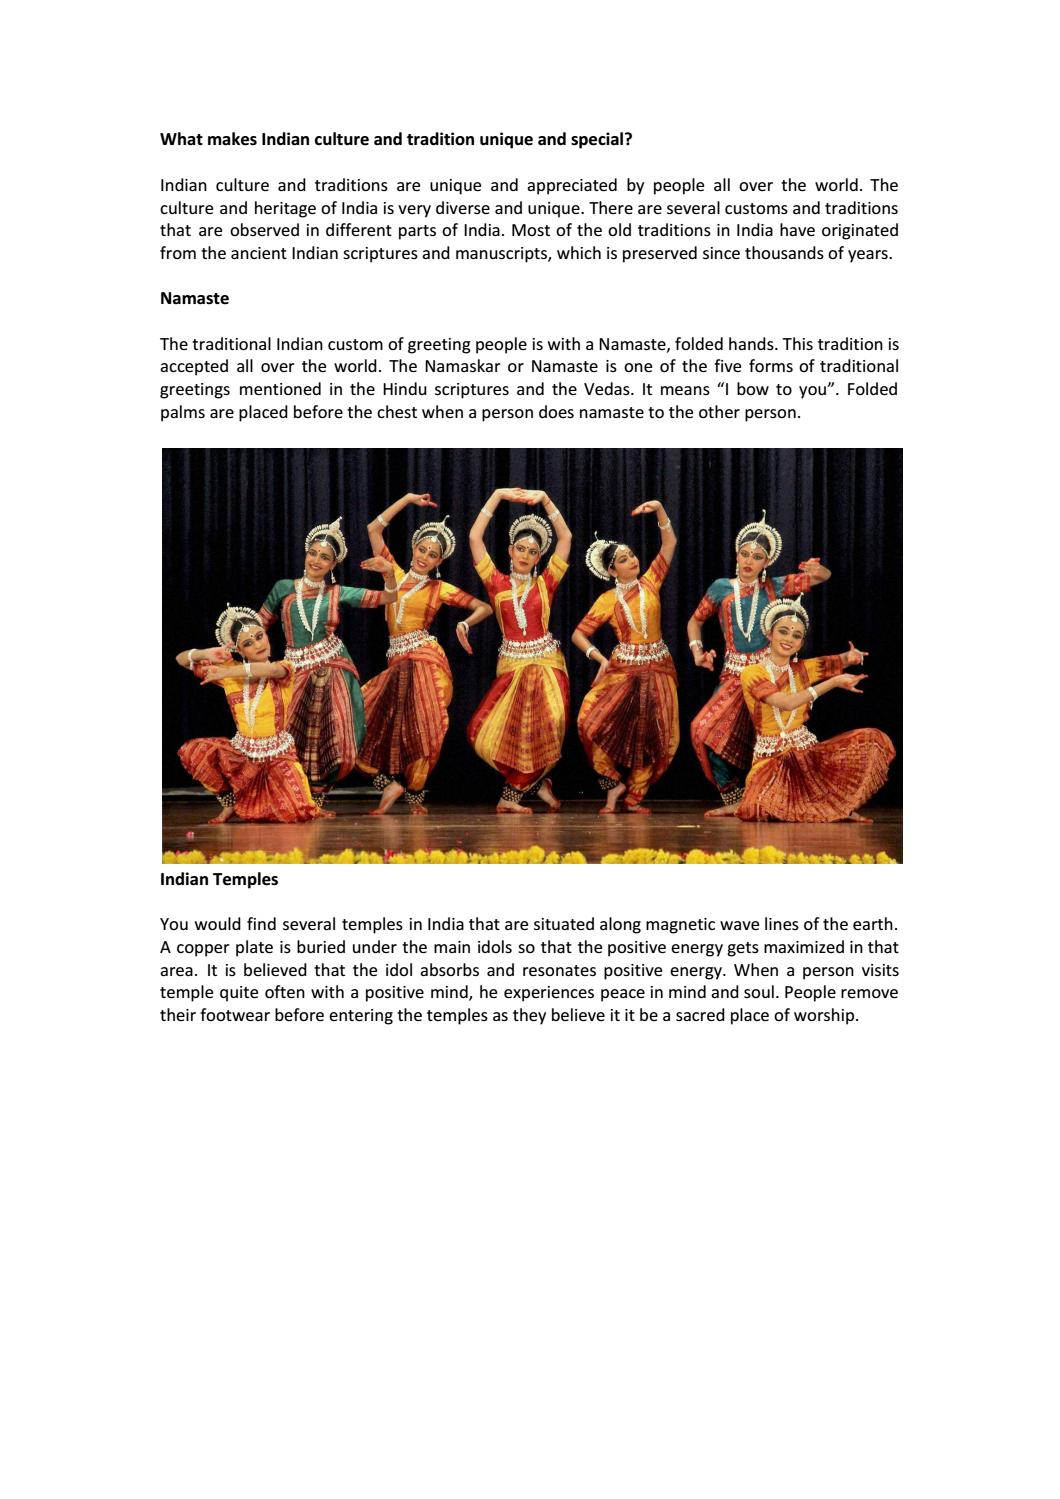 What Makes Indian Culture And Tradition Unique And Special By